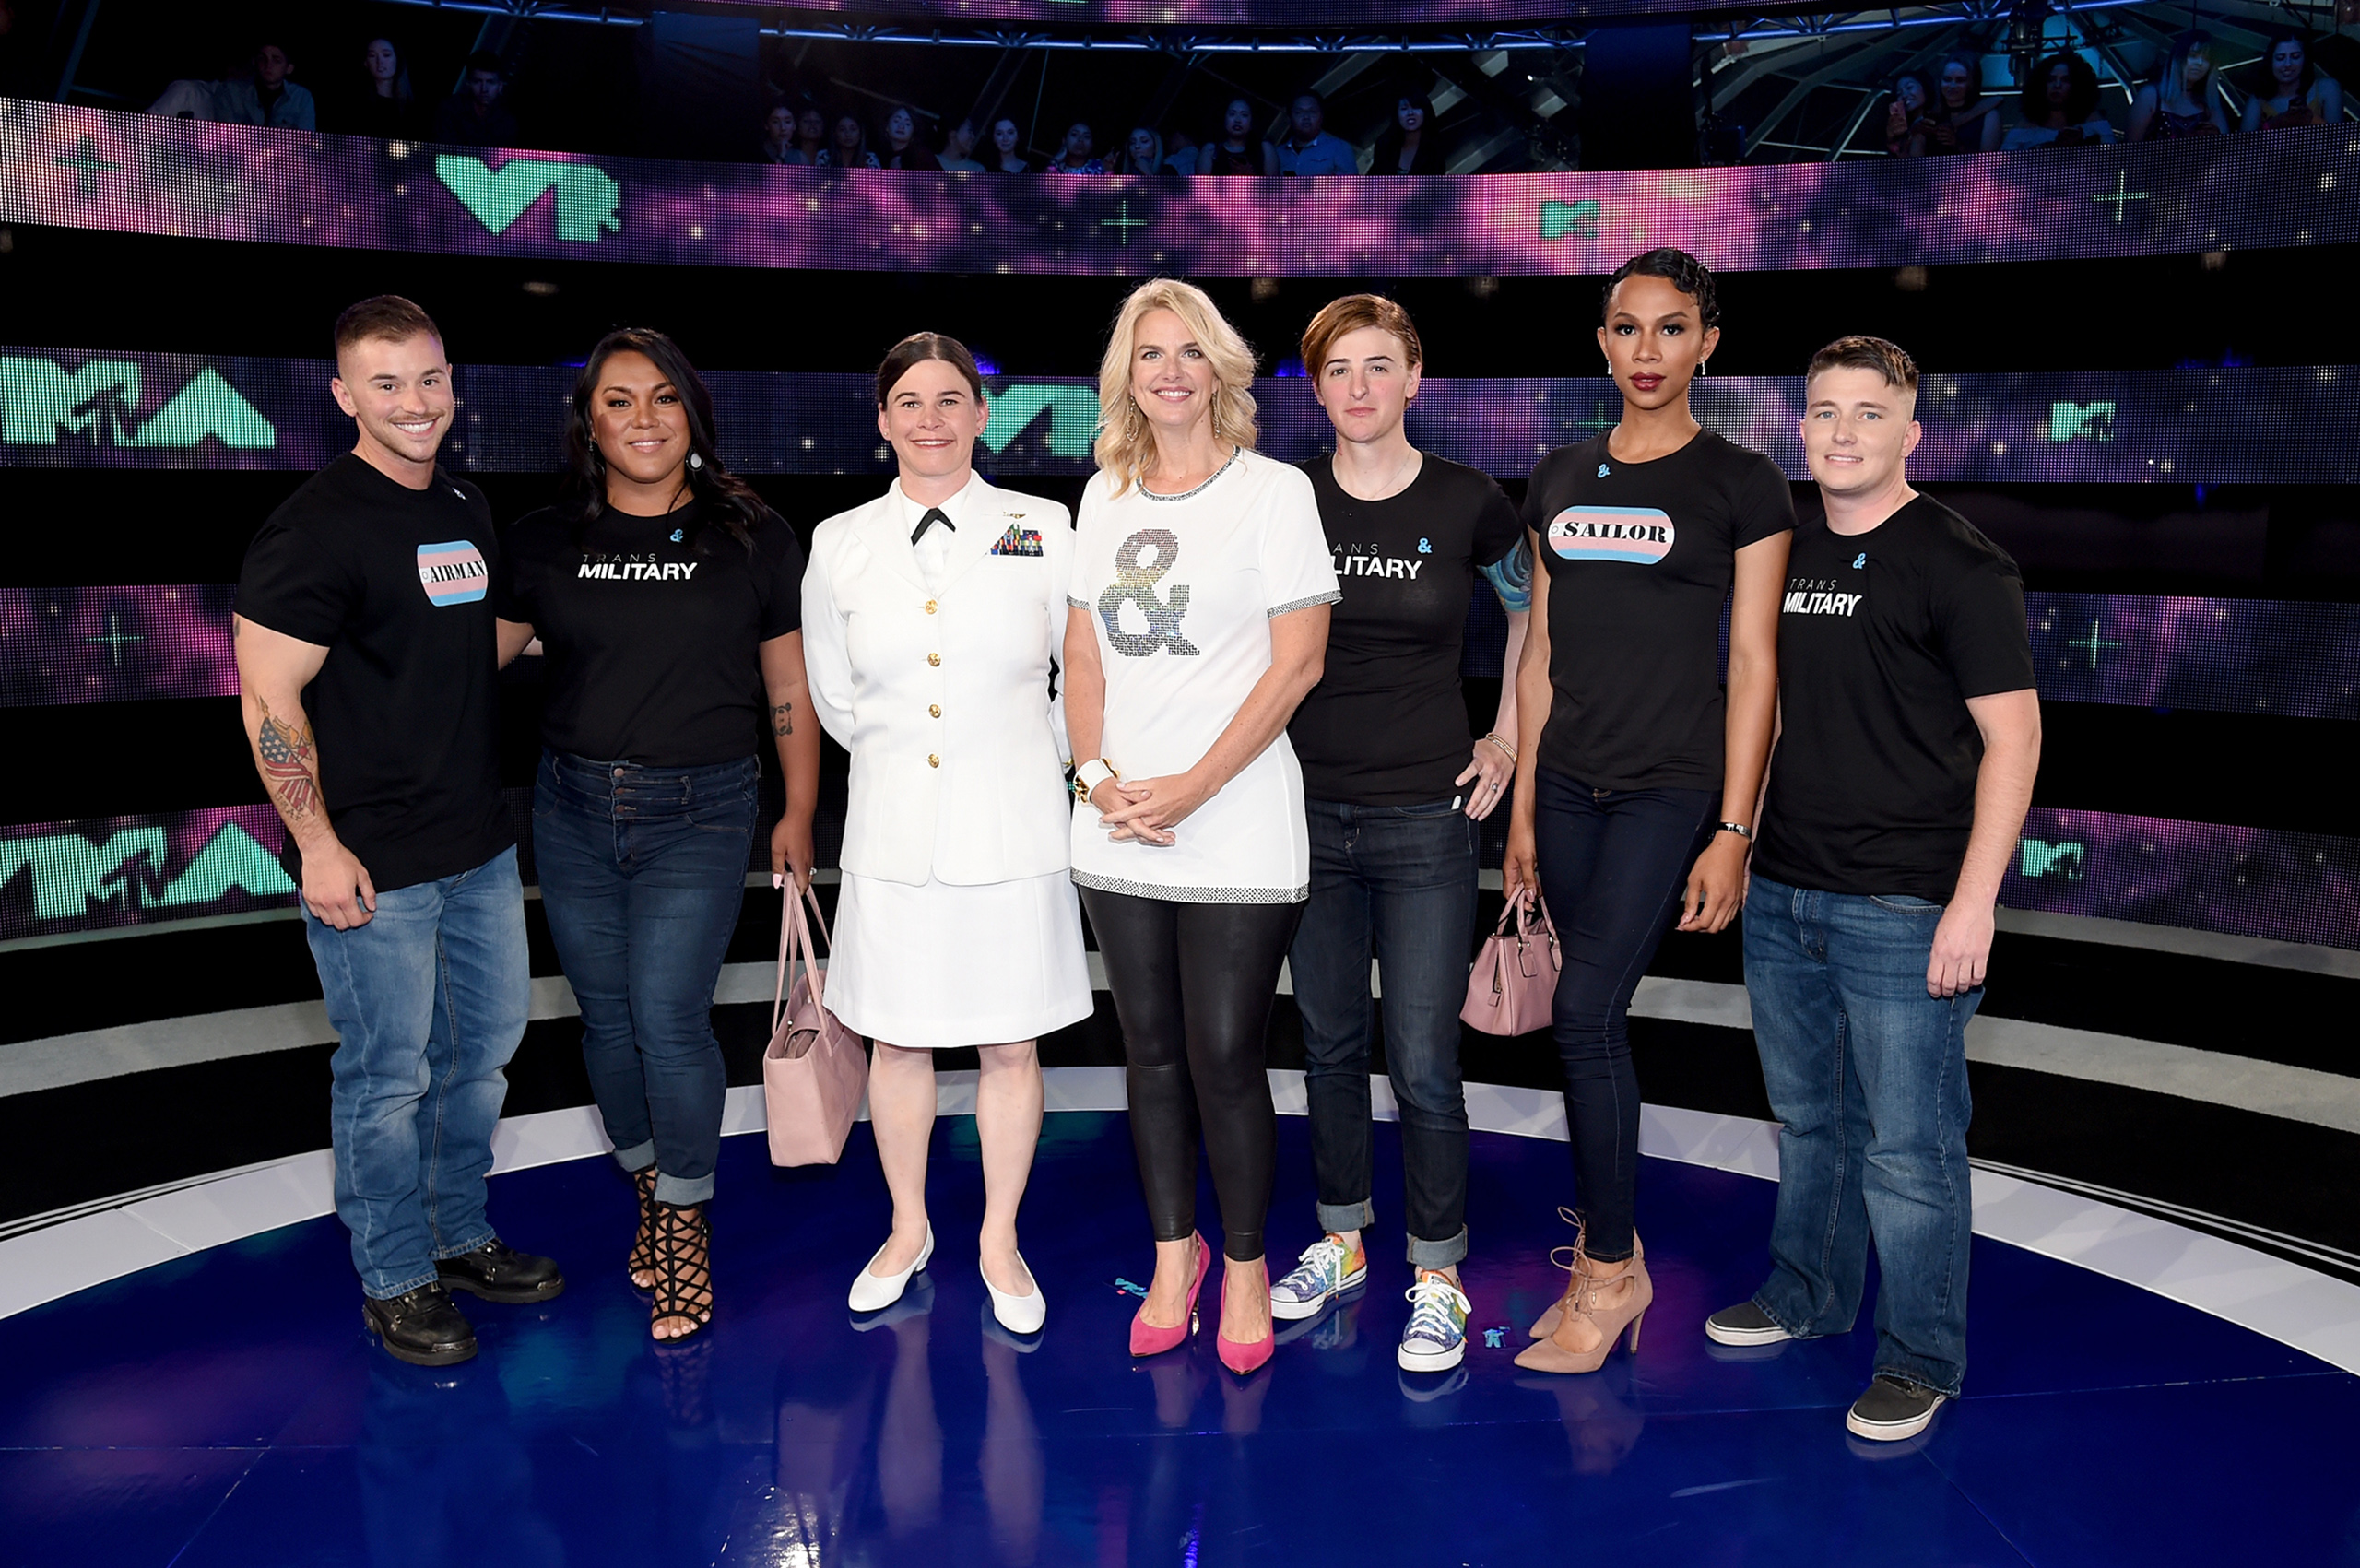 President of GLAAD Sarah Kate Ellis and transgender military members attend the 2017 MTV Video Music Awards at The Forum on Aug. 27, 2017 in Inglewood, Calif.